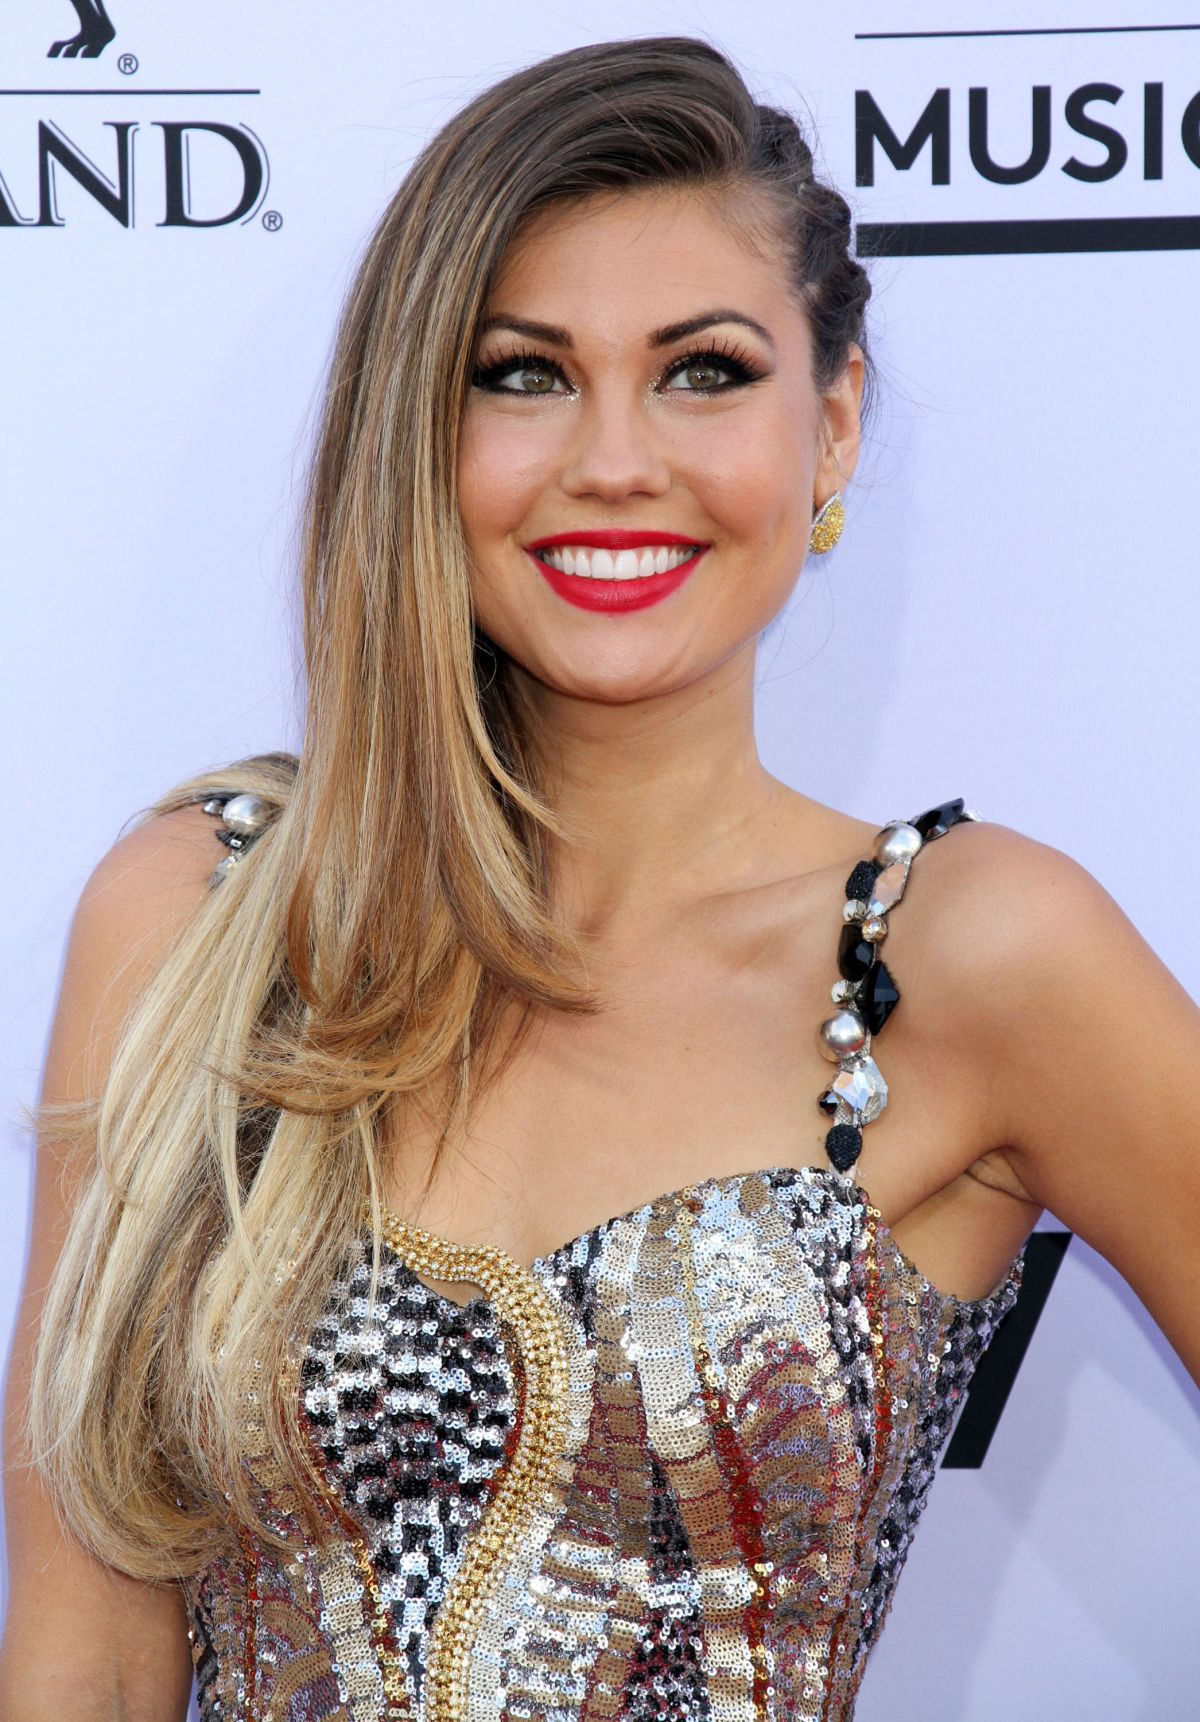 BRITT NILSSON at 2015 Billboard Music Awards in Las Vegas